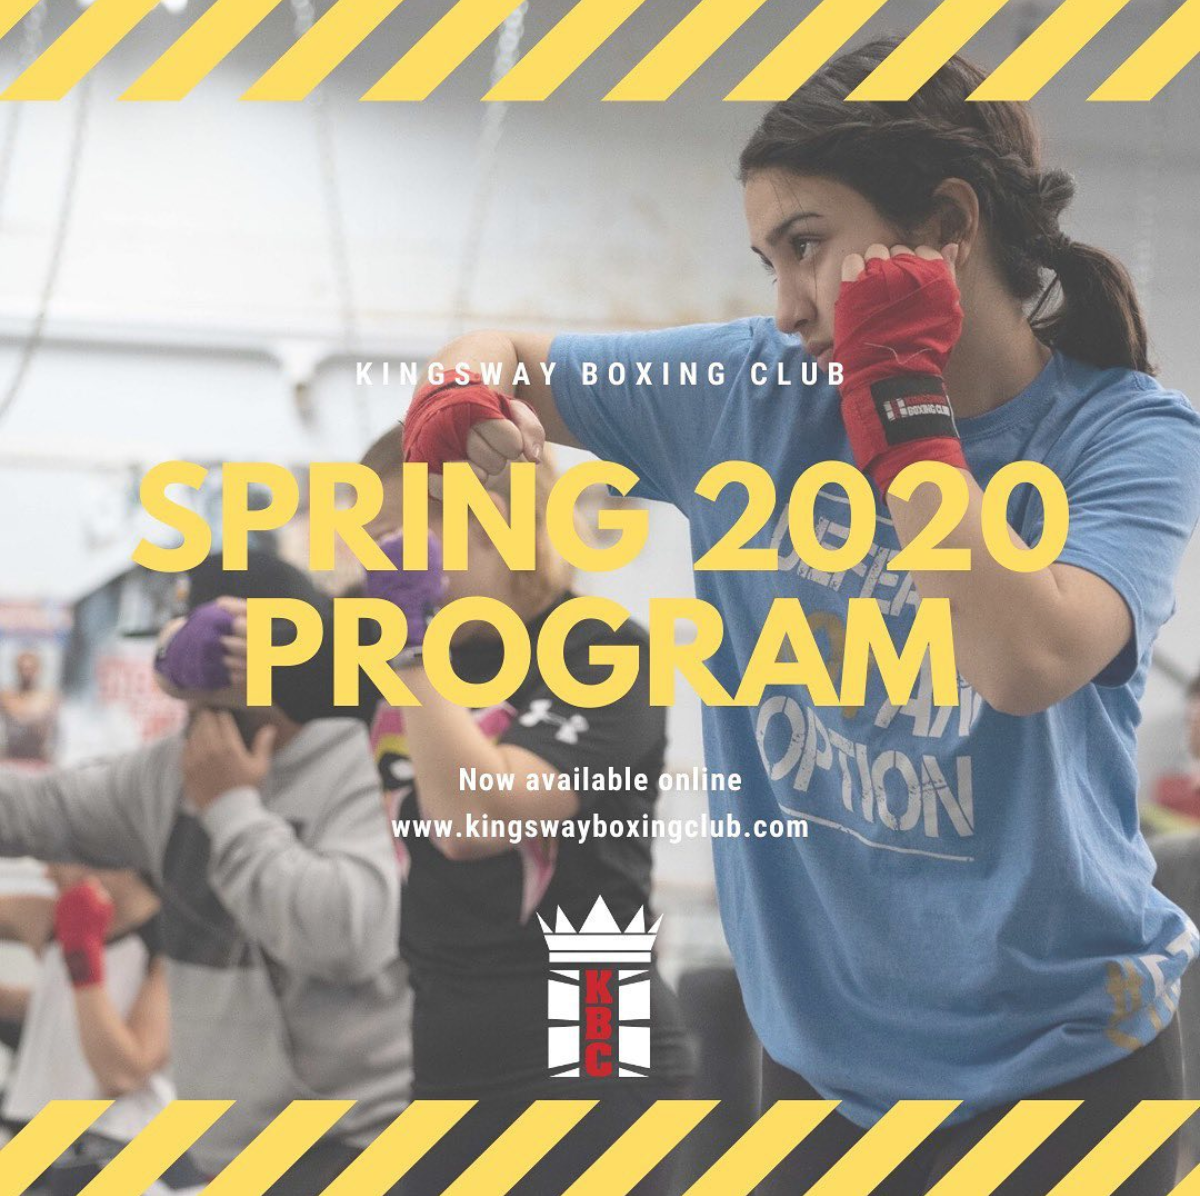 Spring is almost here & so are our Spring 2020 Programs